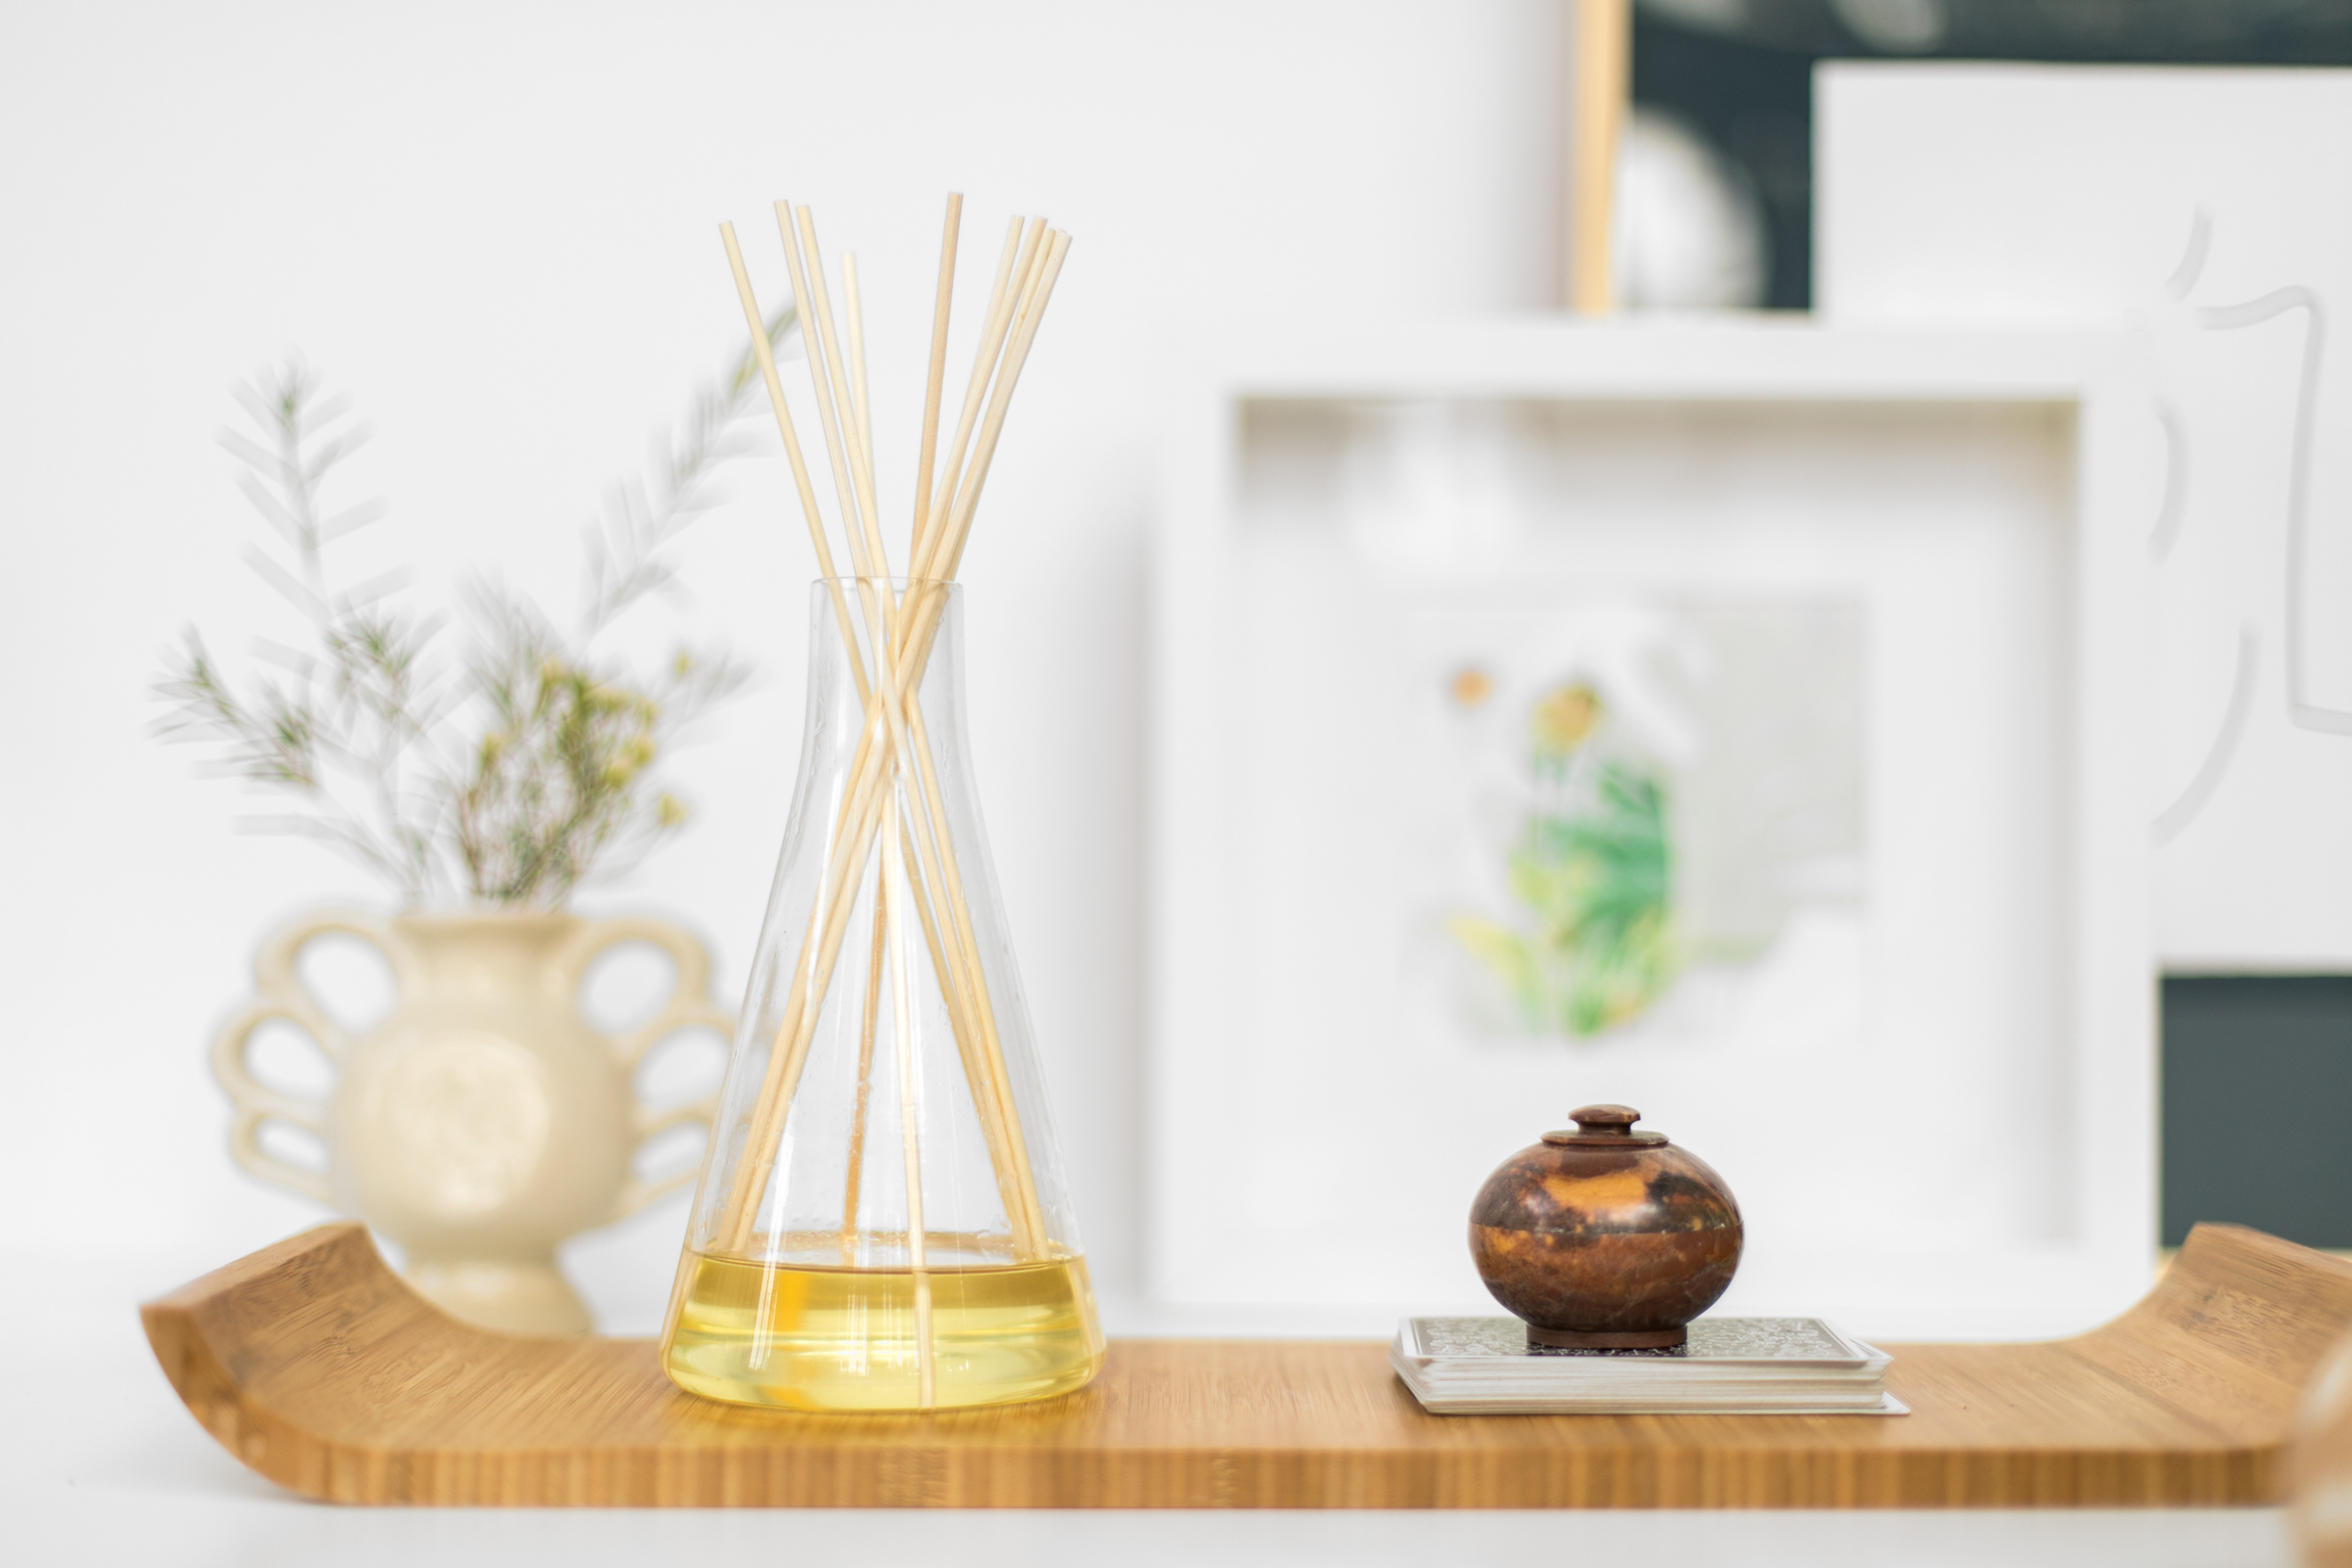 How To Make Homemade Reed Diffusers - Essential Oils